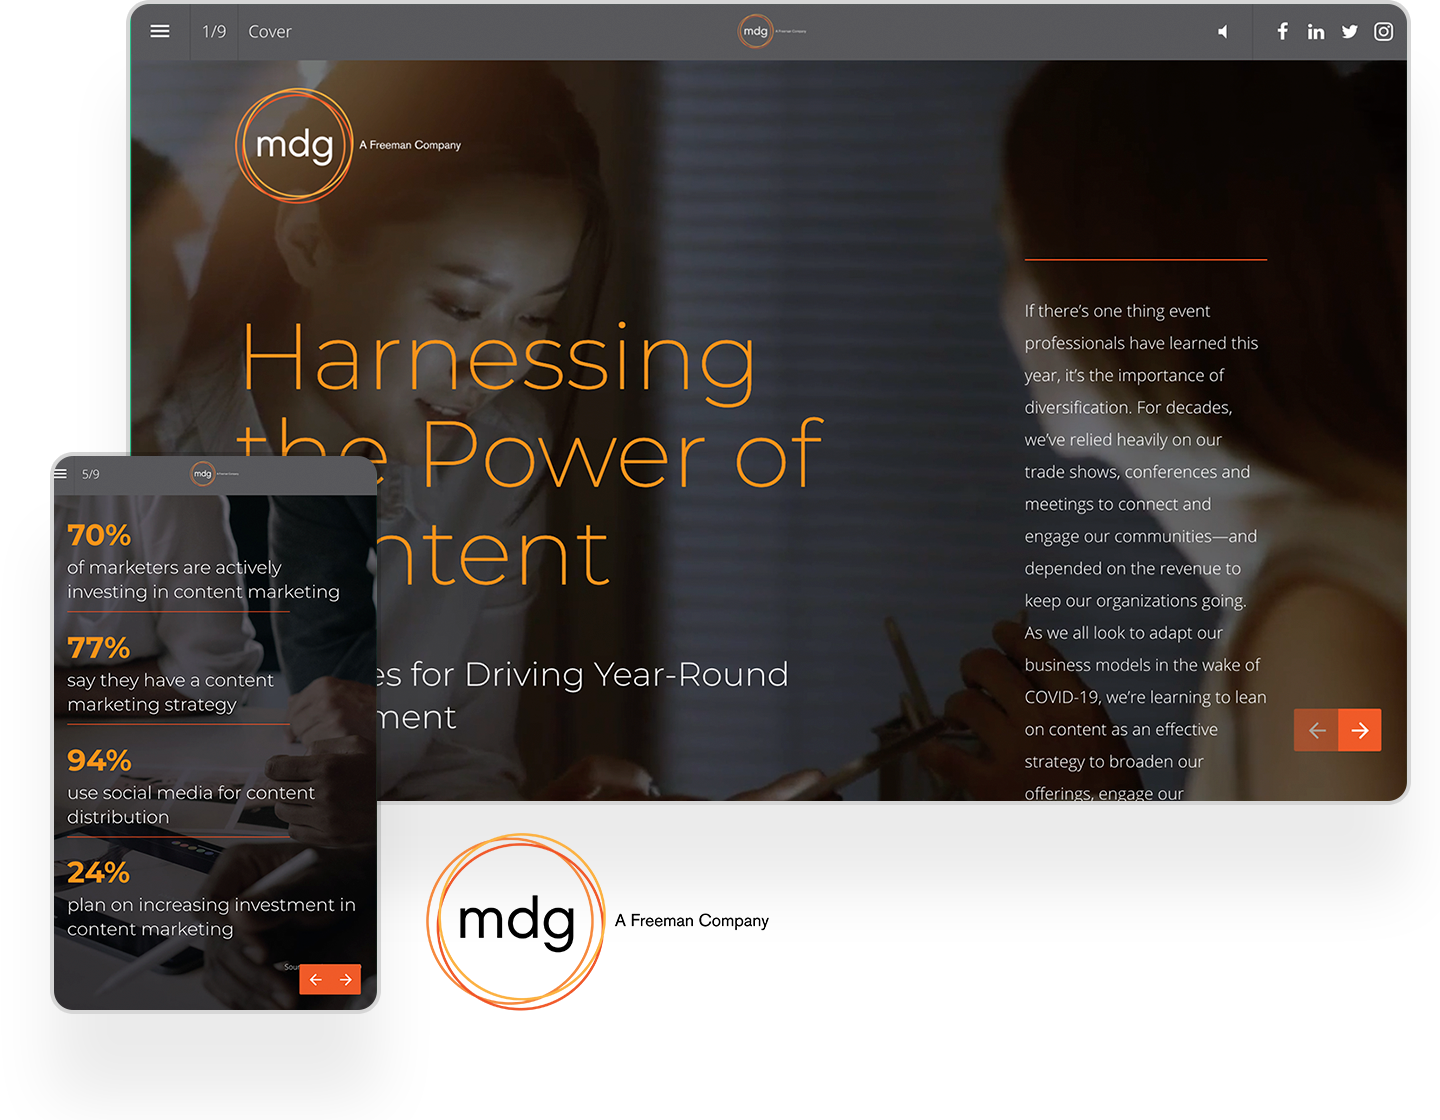 mdg content marketing guide example